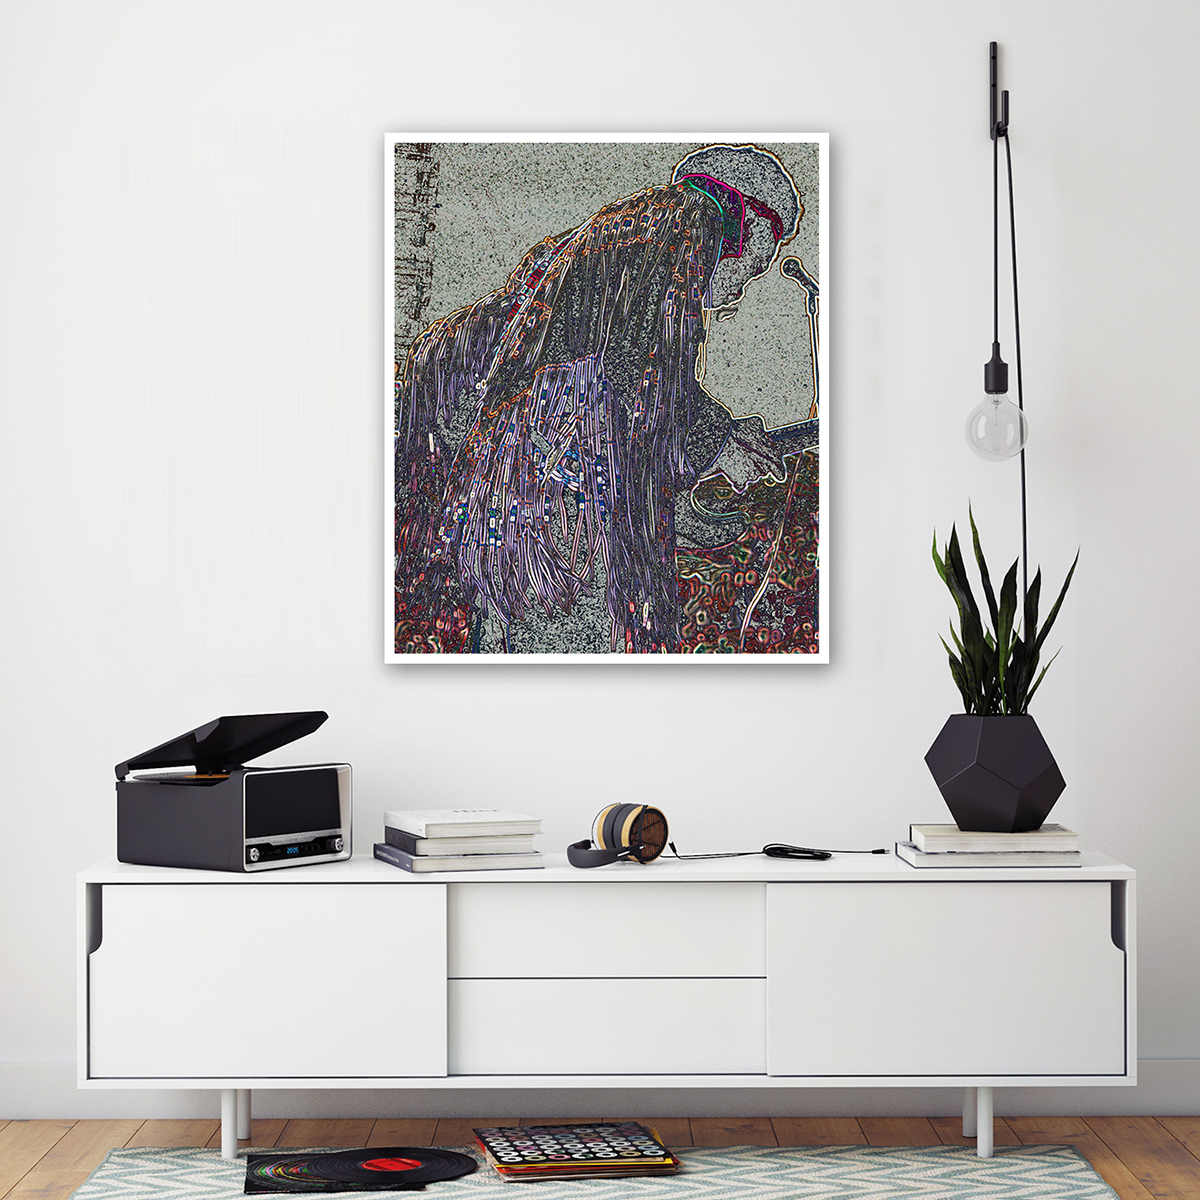 Fringes Canvas Wall Art